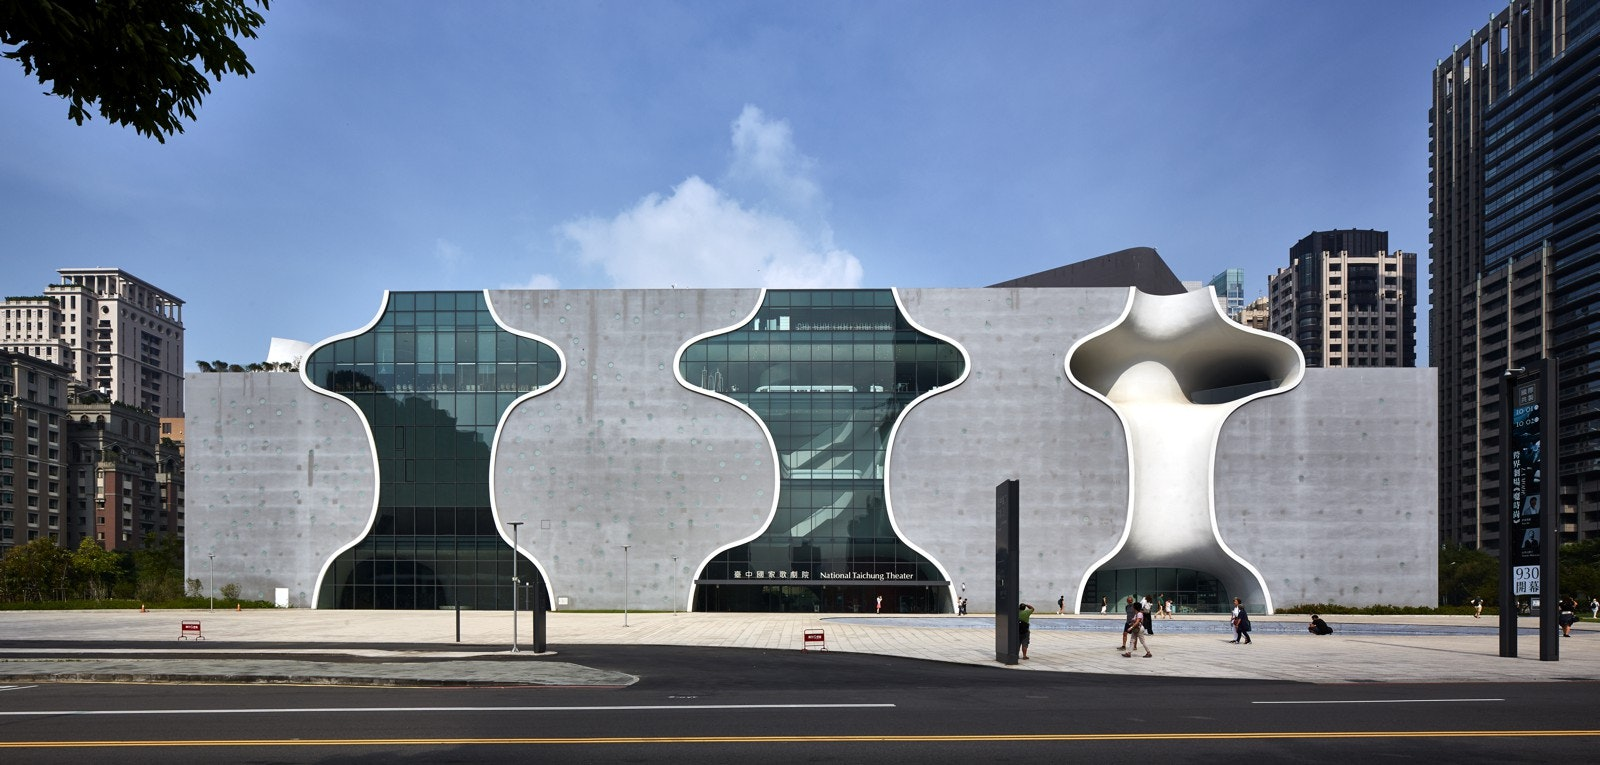 National Taichung Theater, Taichung, Taiwan, by ARUP. Photo: Edmund Sumner.